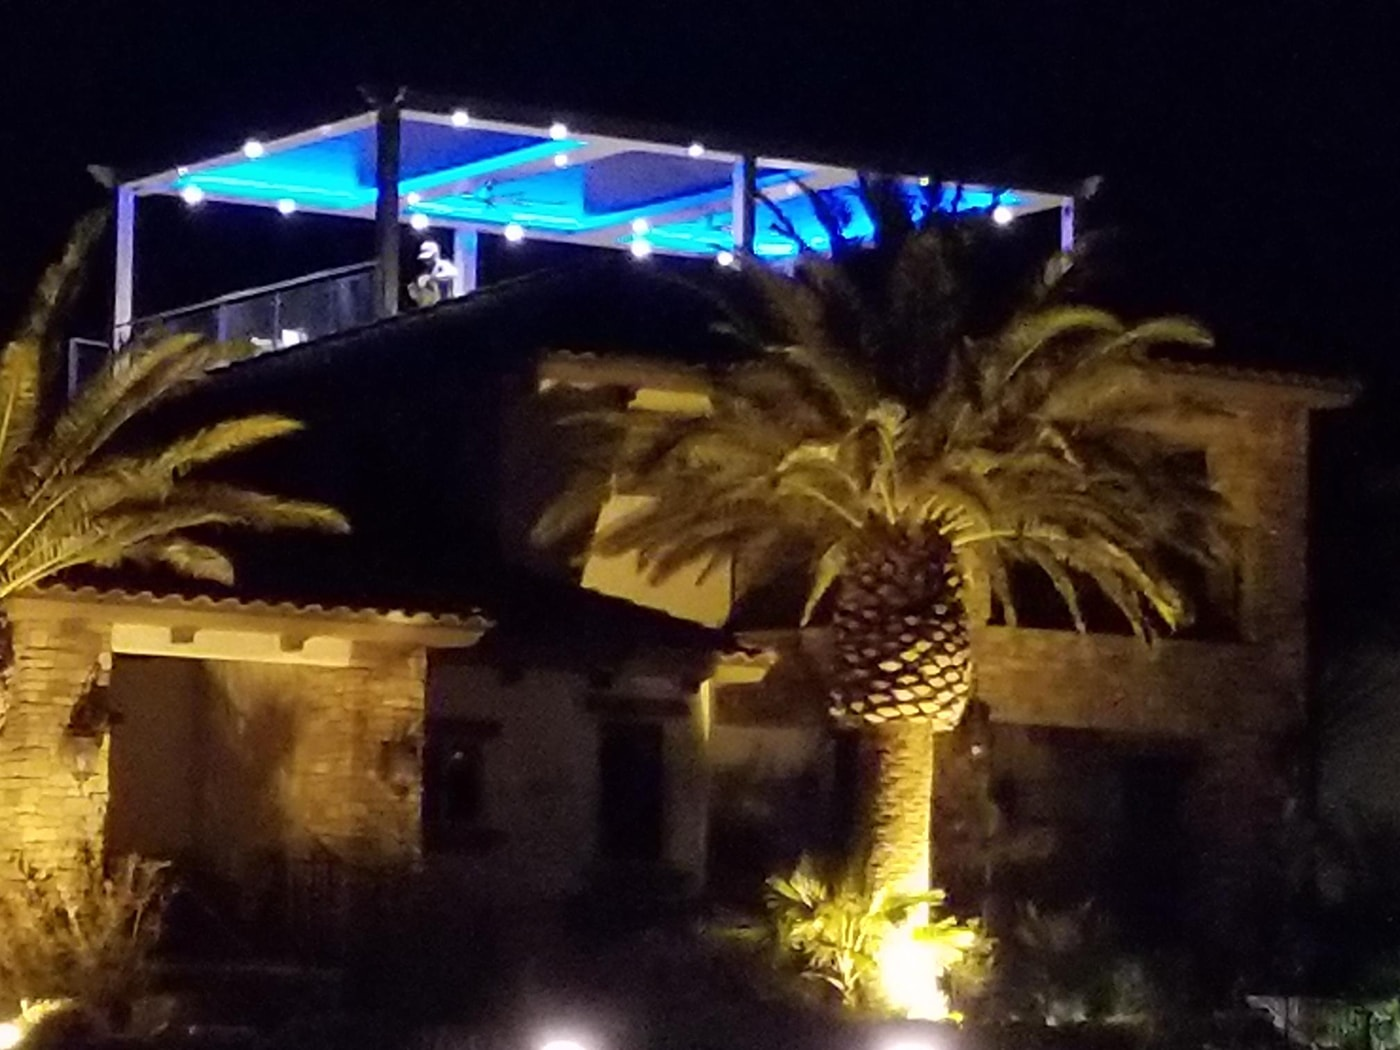 Johns With Blue Lights at Night